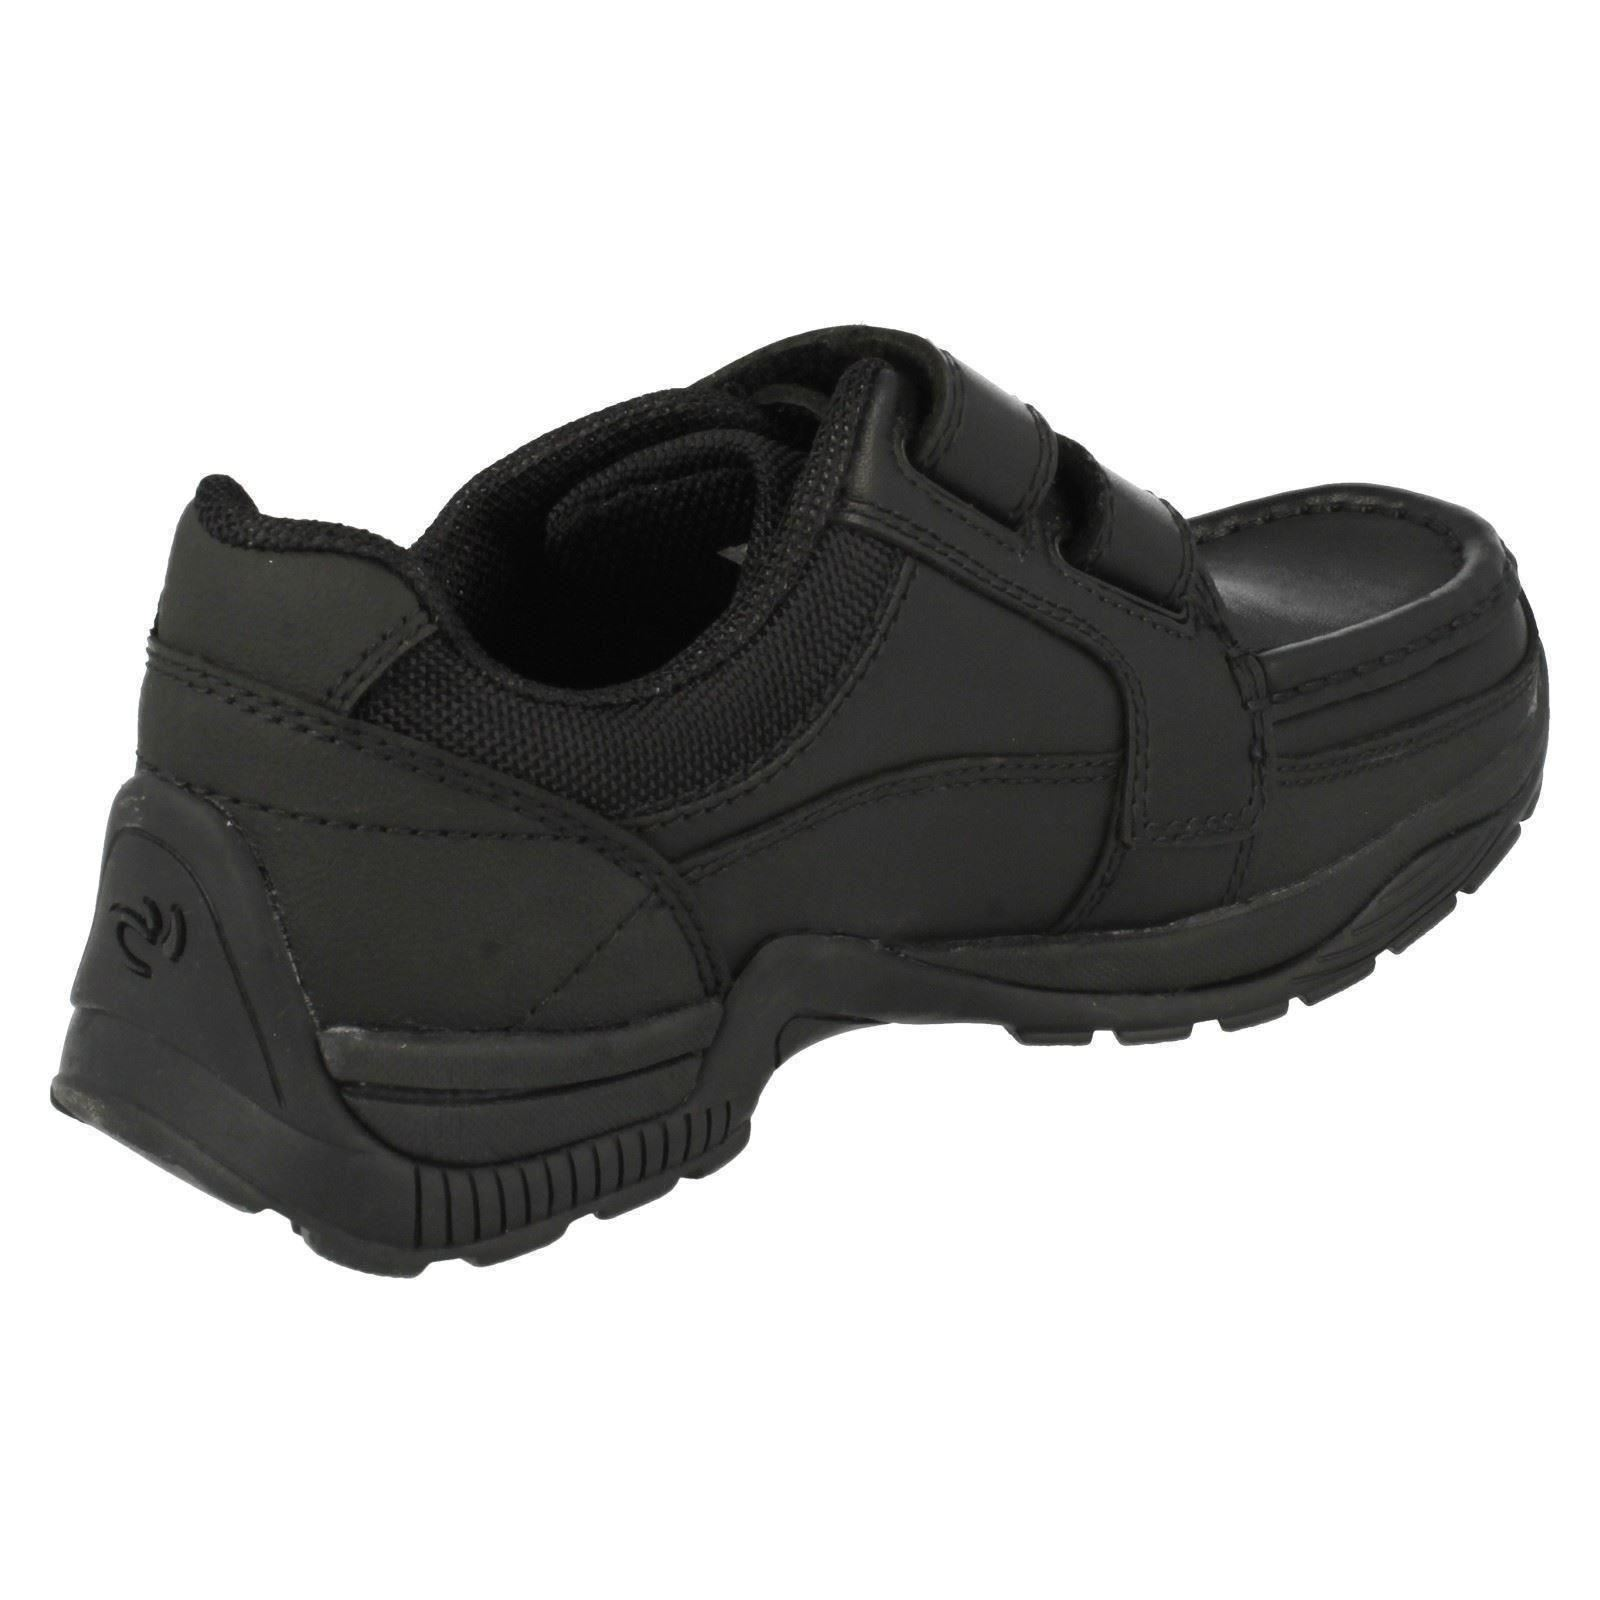 garçons Startrite pour Rhino Miles By Chaussures noir scolaires CS4qWpwA